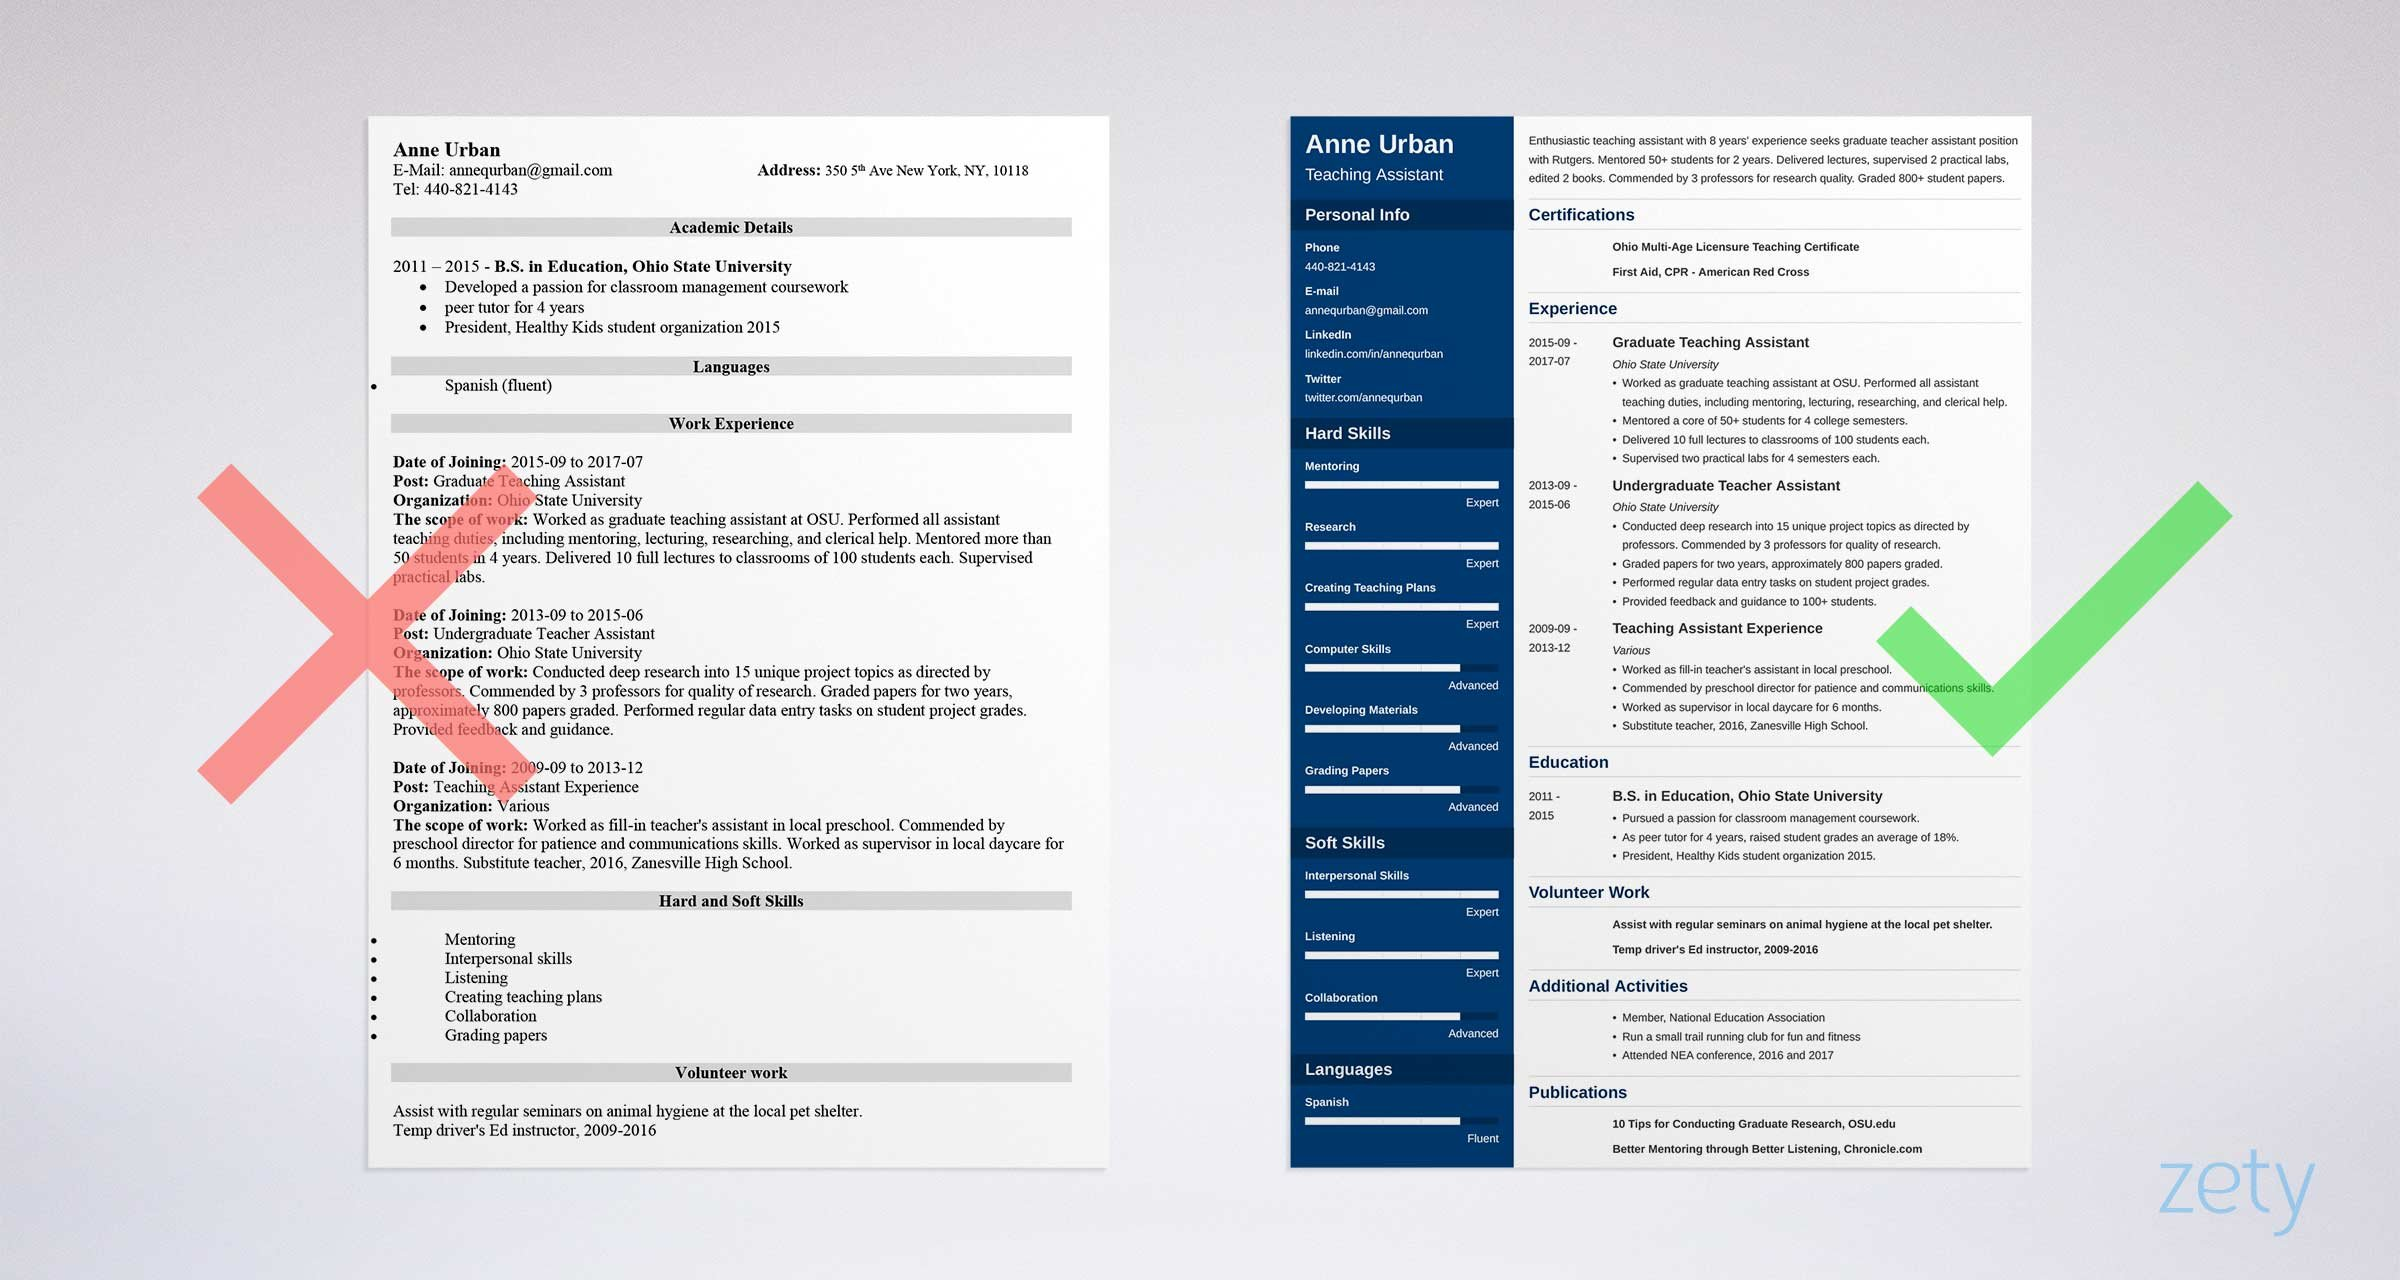 Resume Font Interesting Best Font For A Resume What Size Typeface To Use [48 Pro Tips]